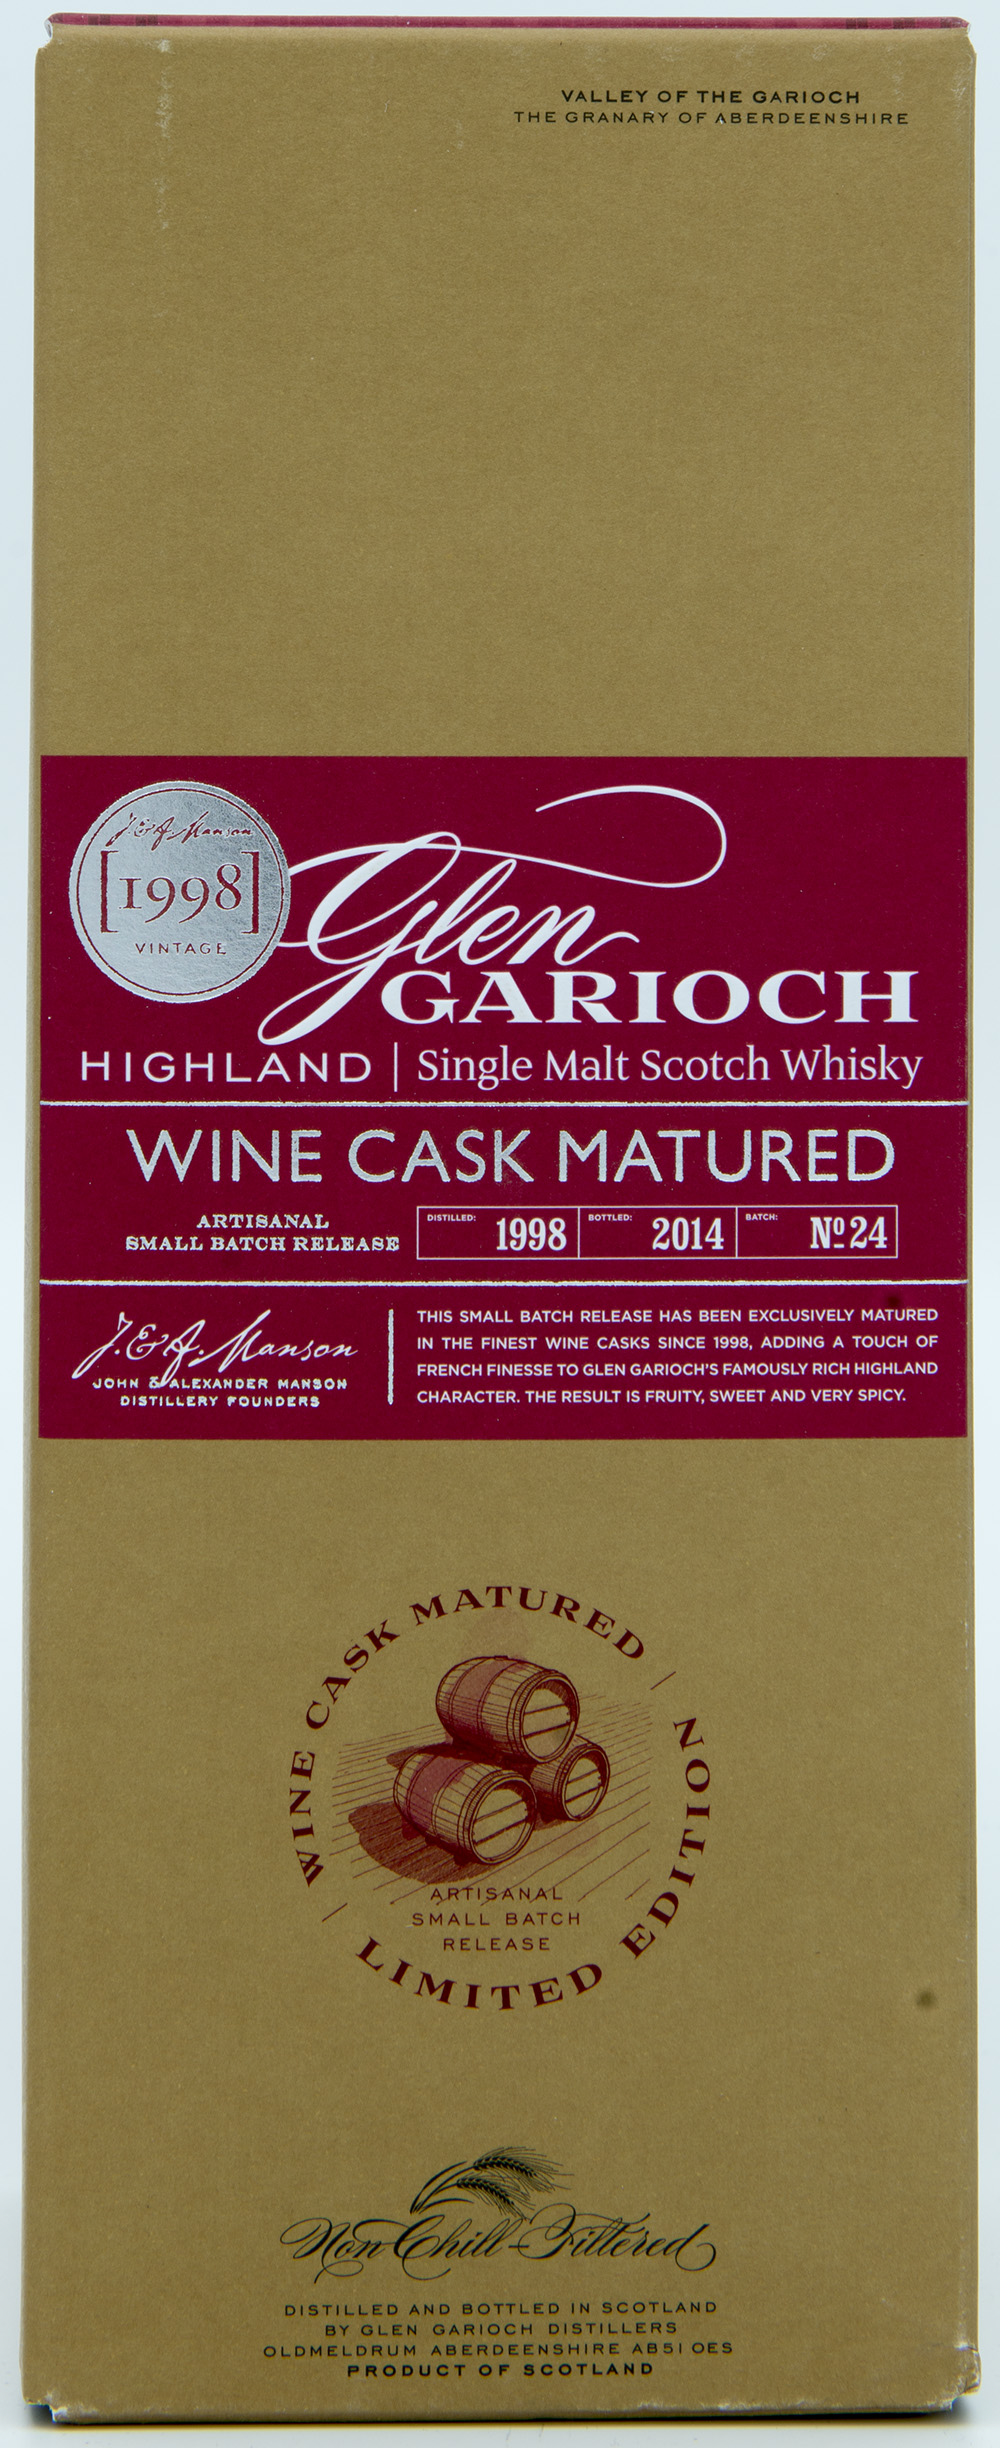 Billede: DSC_6563 Glen Garioch Batch 24 - Wine cask Matured 1998 - 2014 - box front.jpg